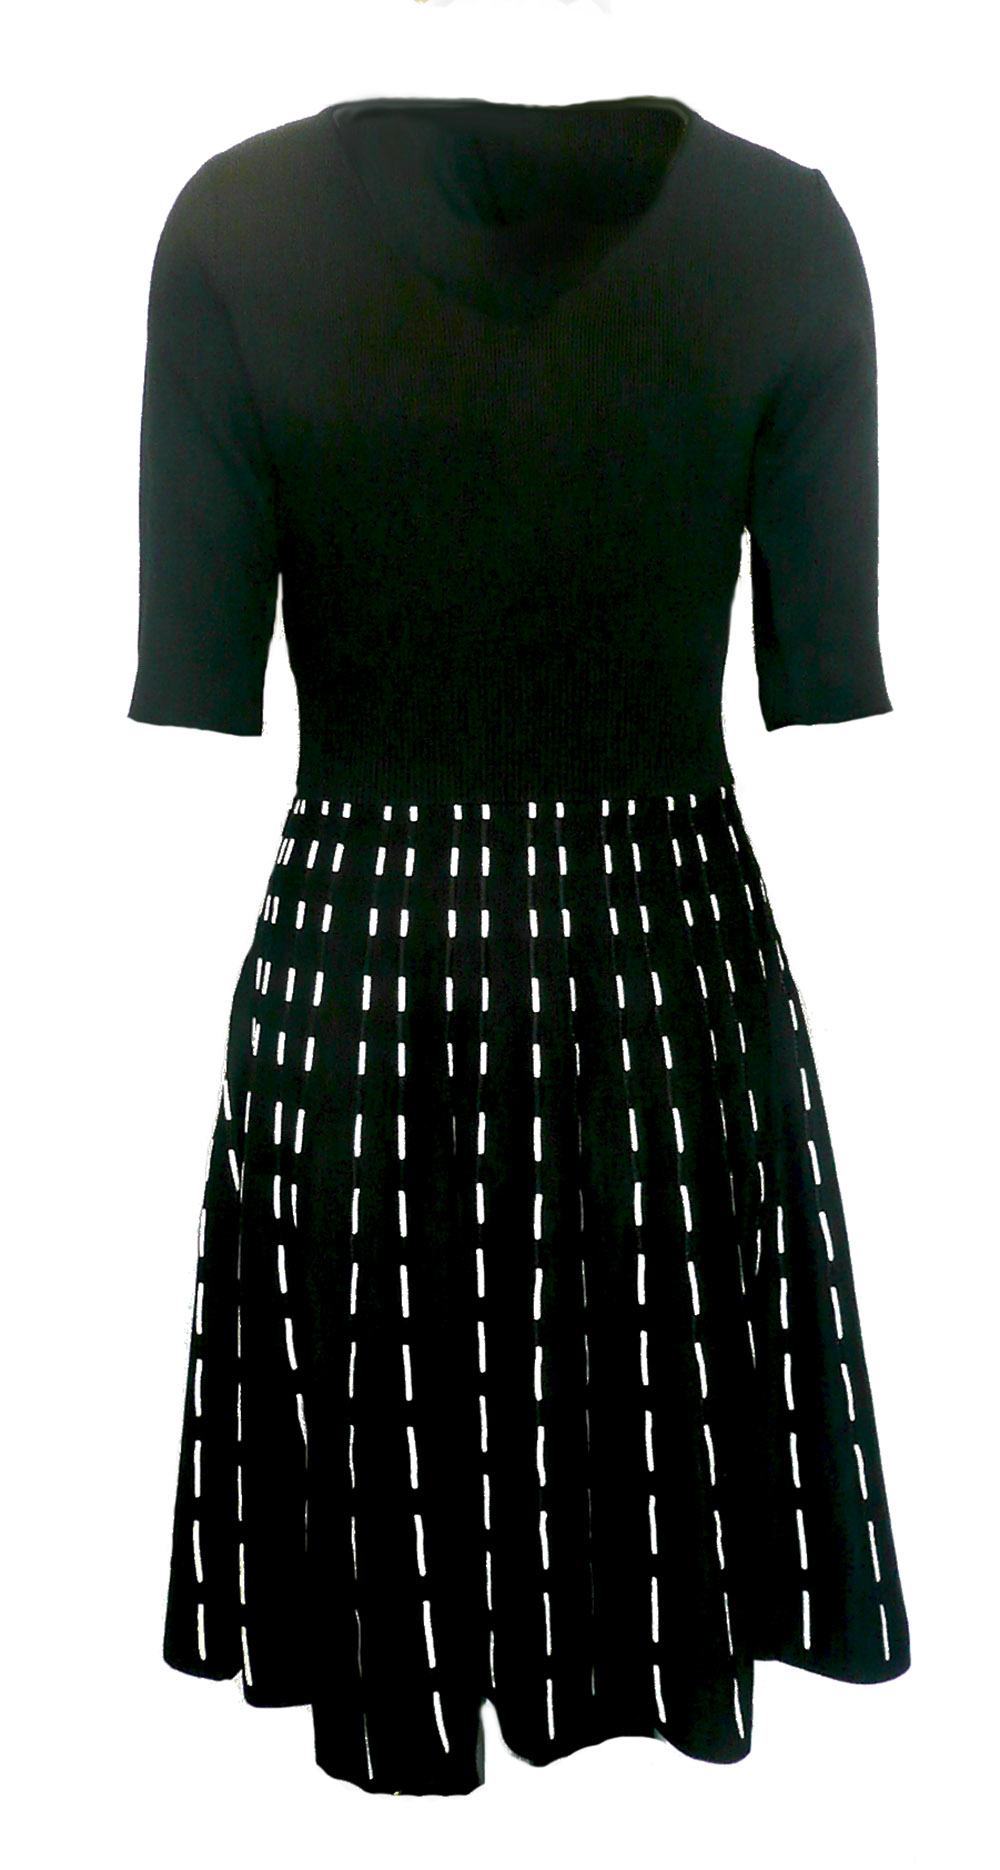 dress bw graphic knit.jpg